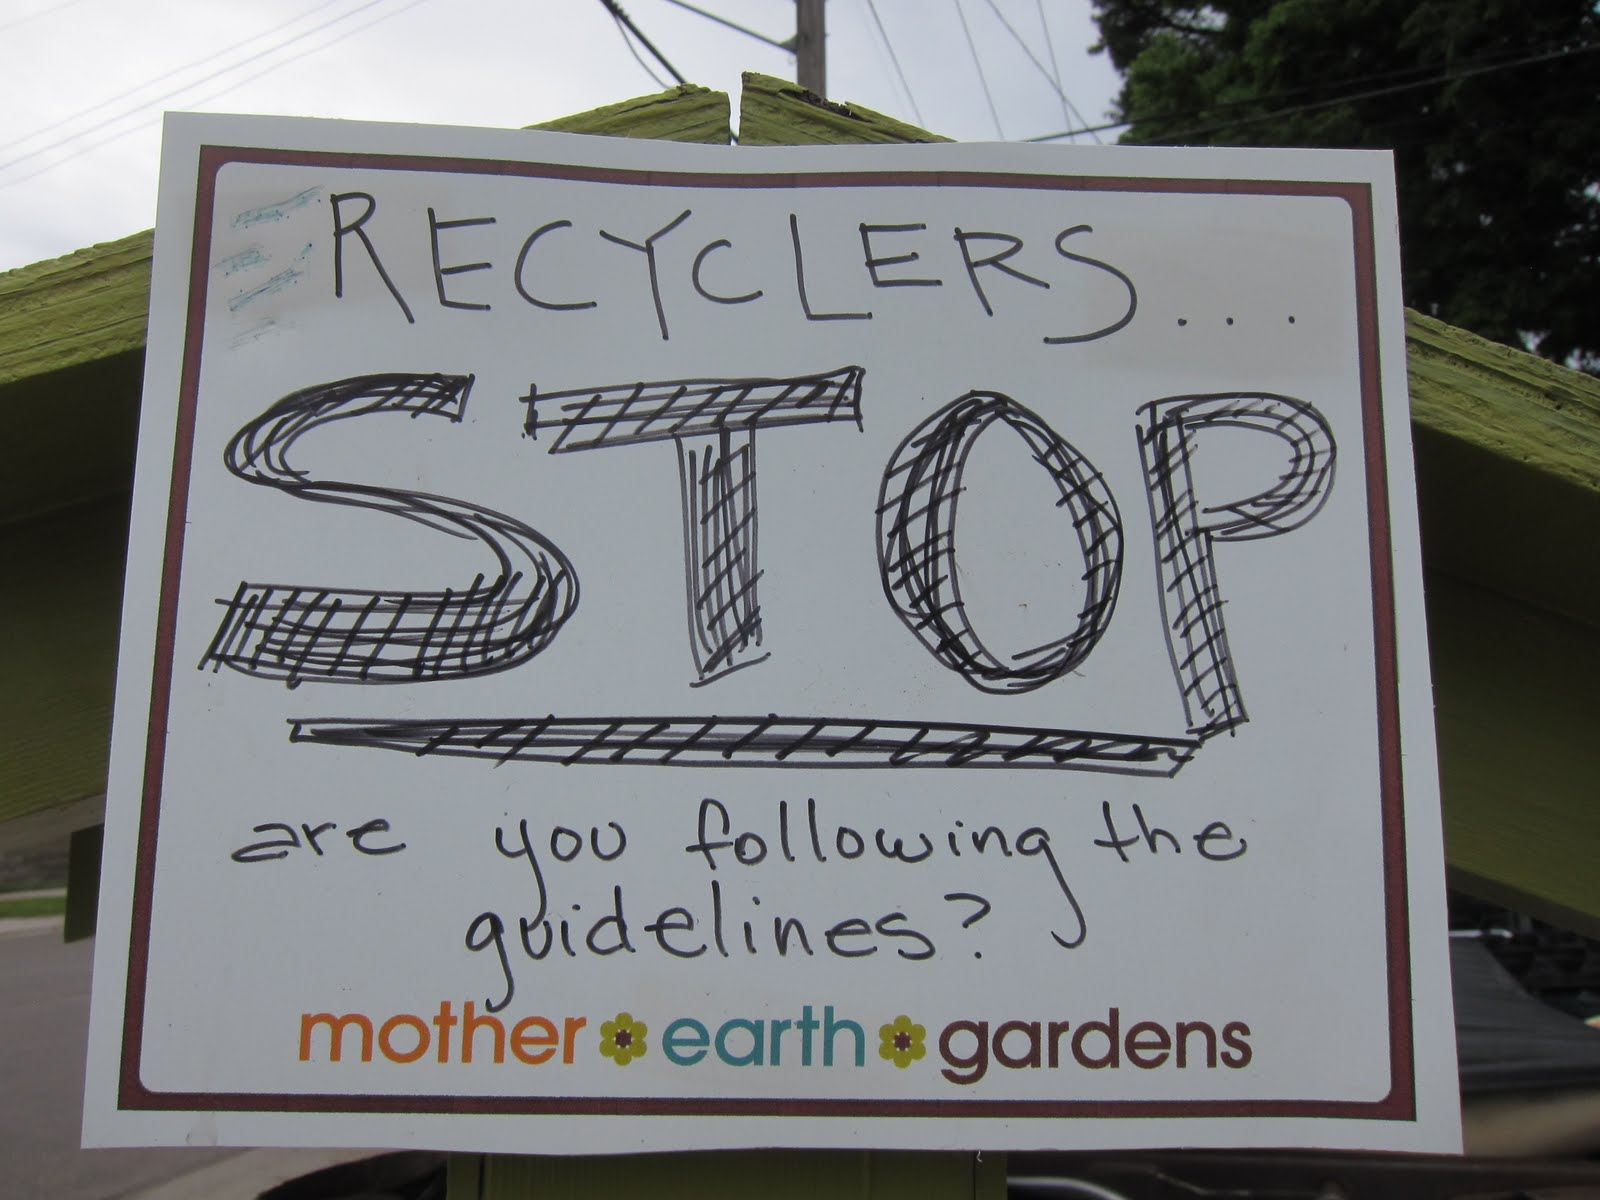 At Mother Earth Gardens, They Spell Out How We Should Prep Our Plastic  Plant Pots So They Can Be Recycled. Hereu0027s A List Of Other Garden Centers  Where You ...